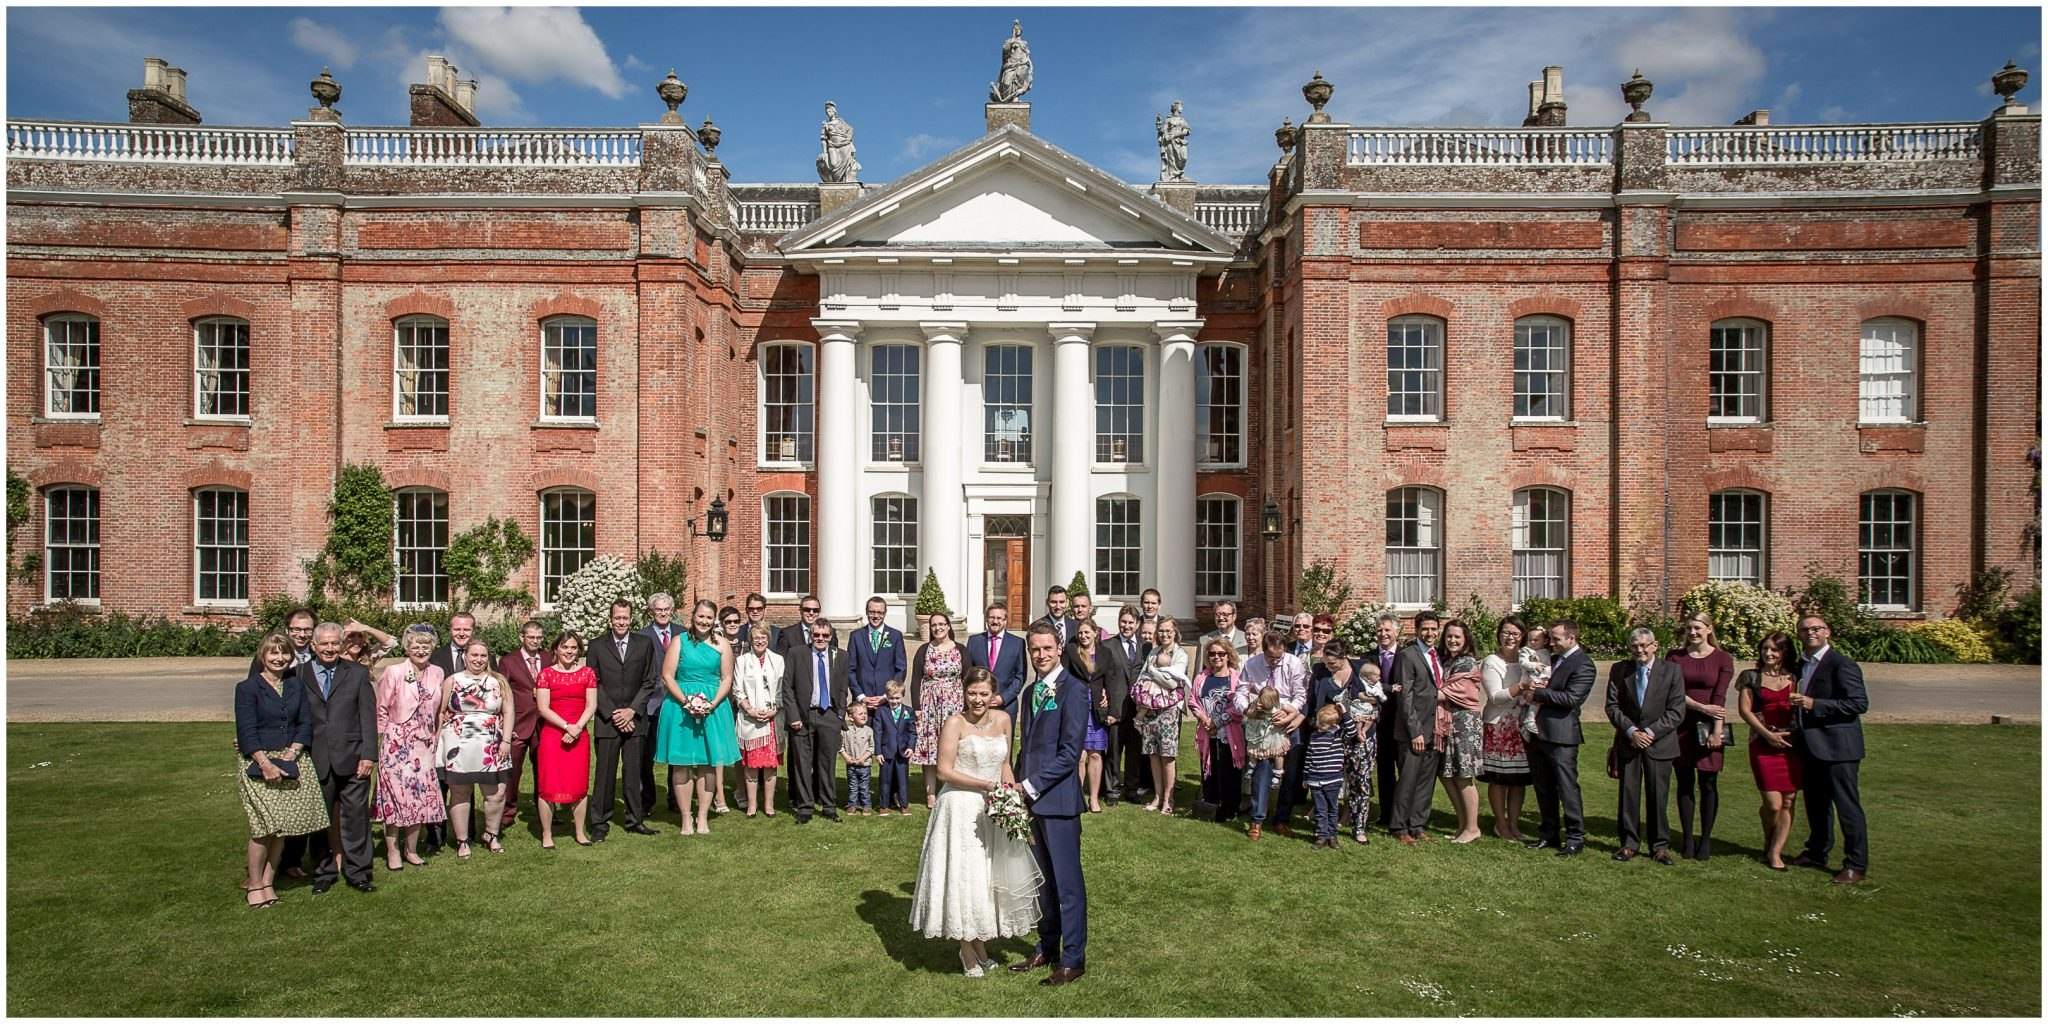 Avington Park wedding photography group photo of guests in front of house